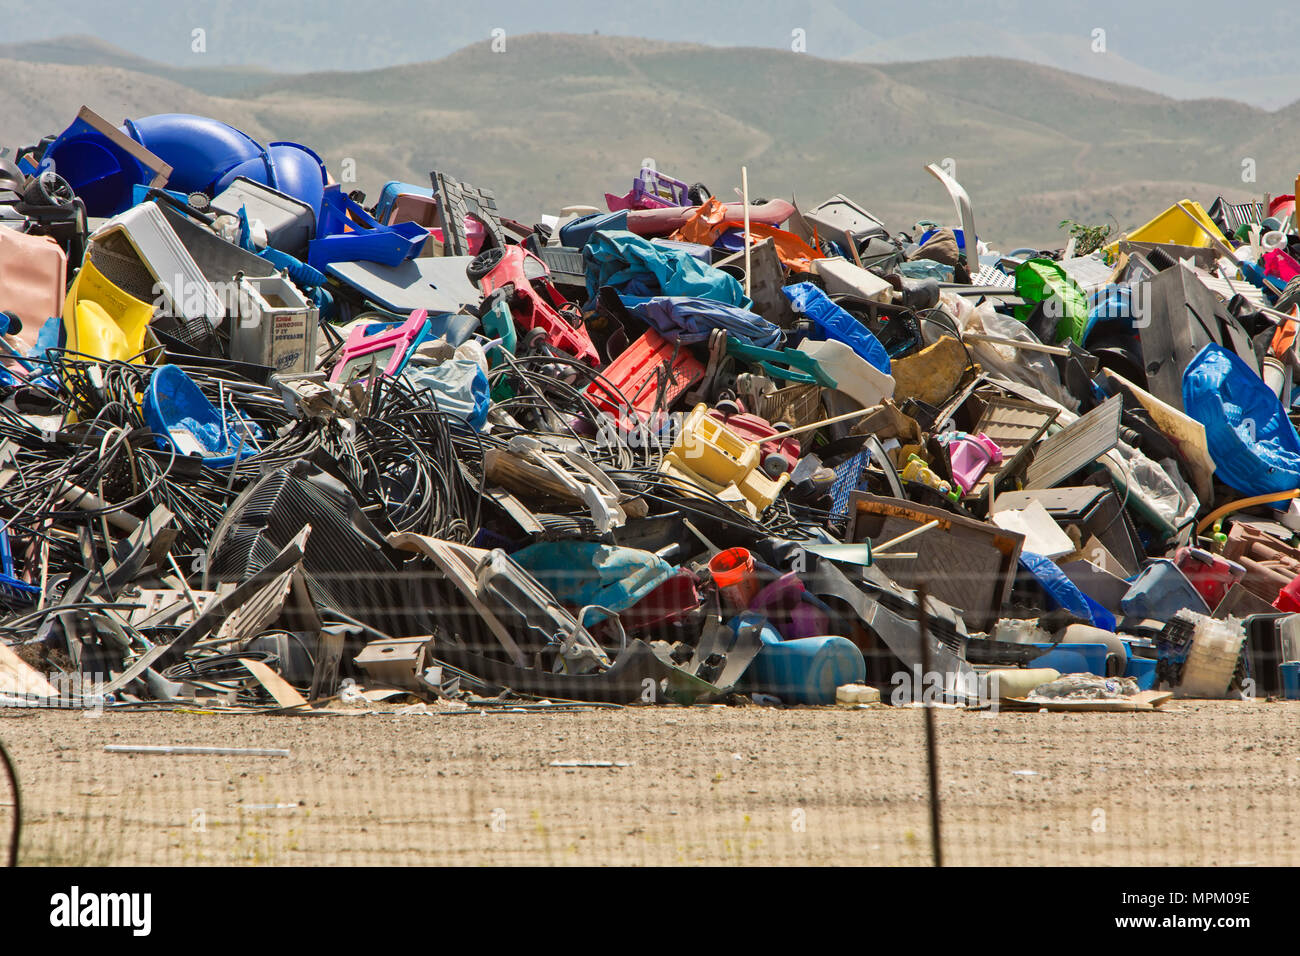 Recycling discarted plastic products, sanitary landfill. - Stock Image